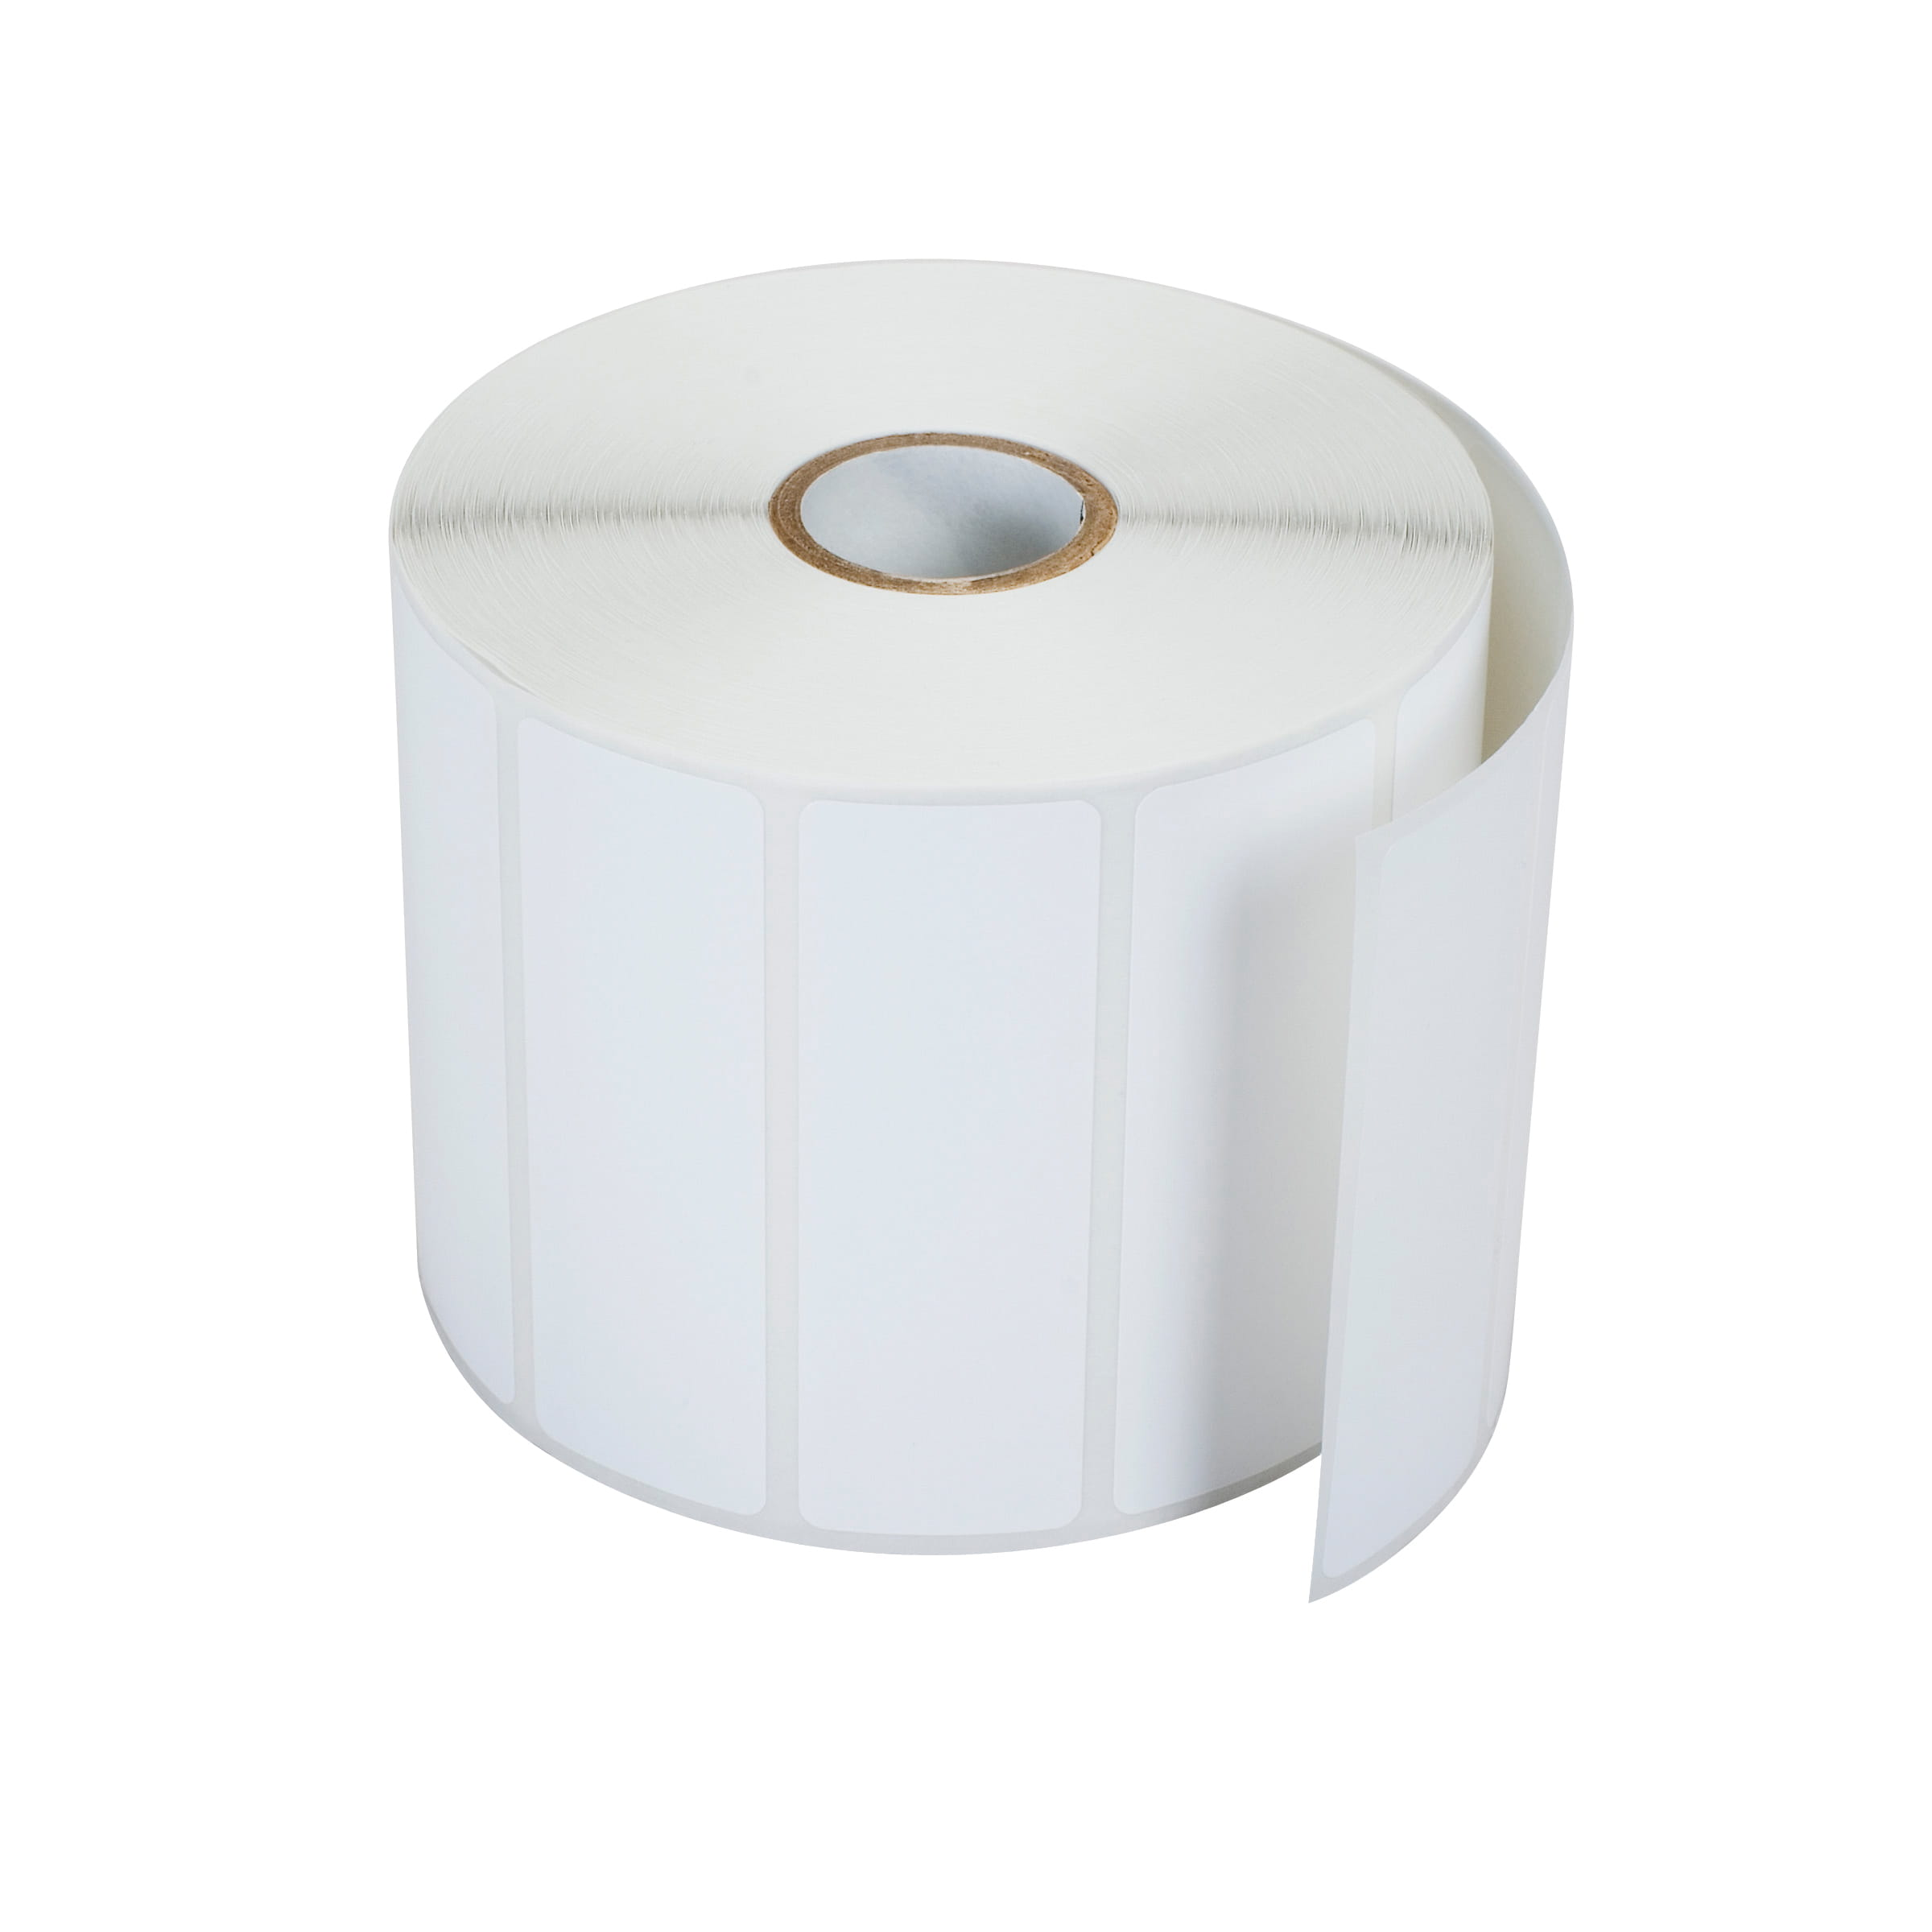 RD-SO4U1-3x1 - label roll